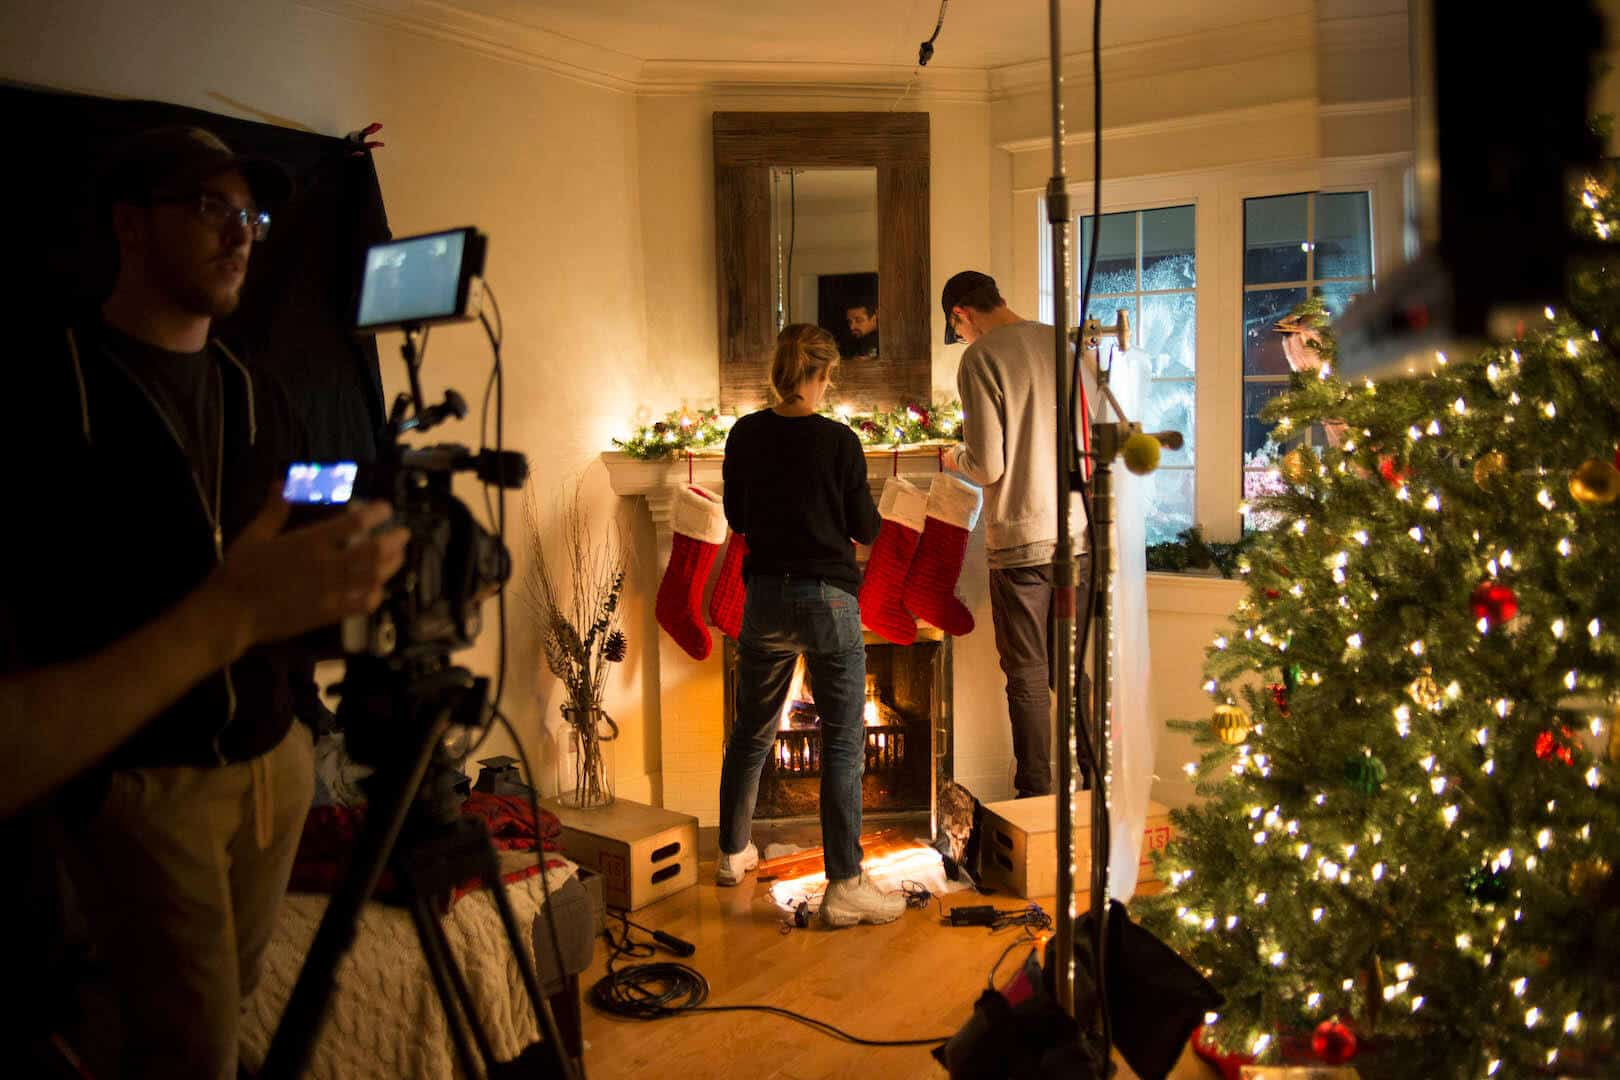 Video shoot in festive holiday family room